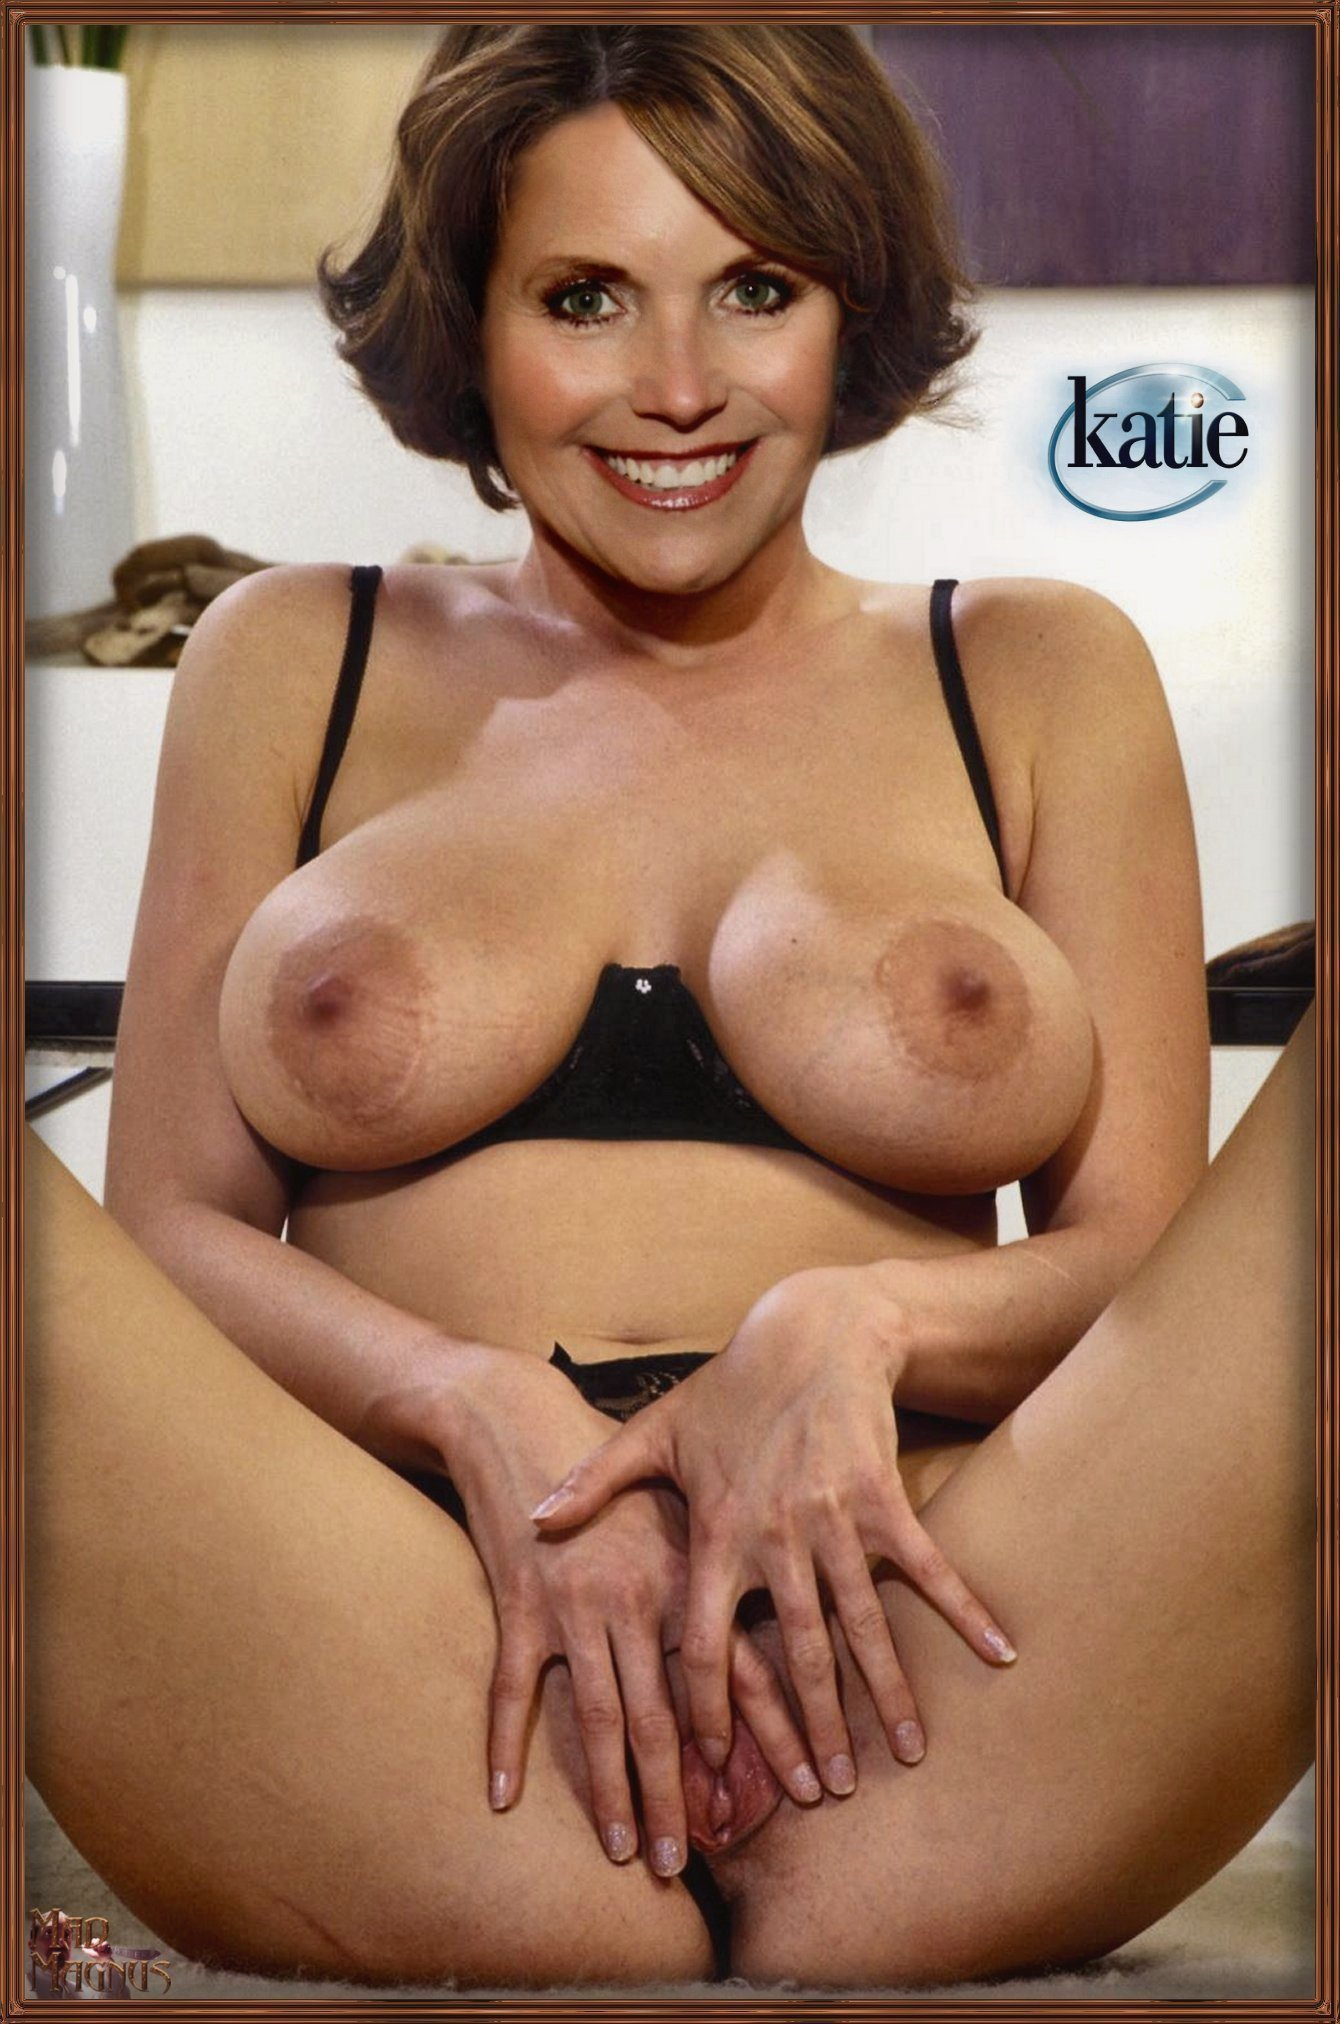 Nude photos of katie couric